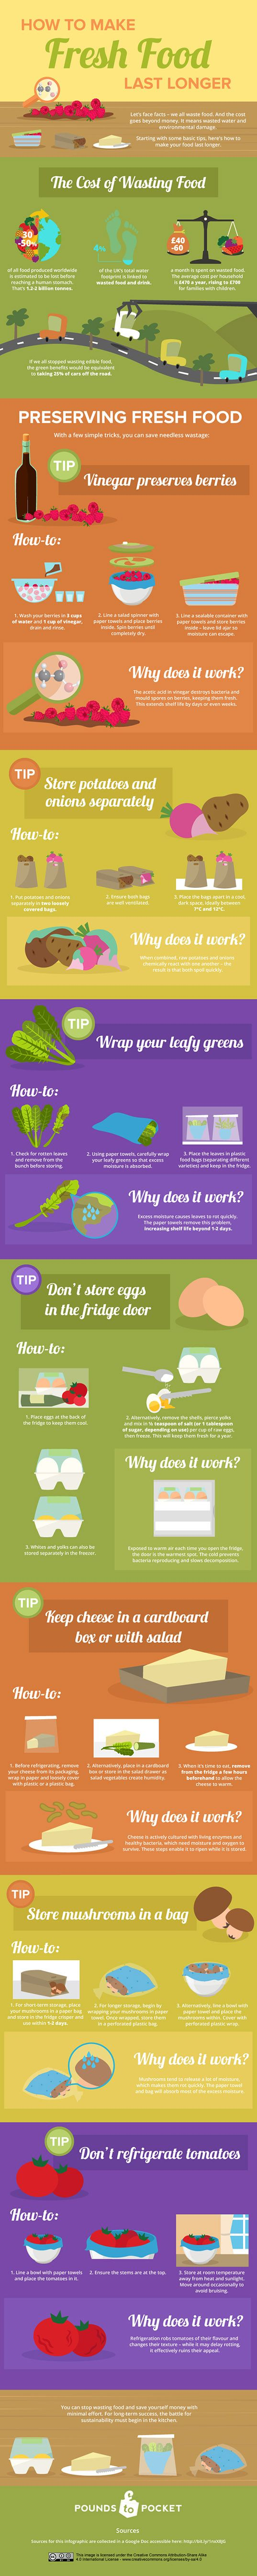 How to make food last longer! Gloucestershire Resource Centre http://www.grcltd.org/scrapstore/